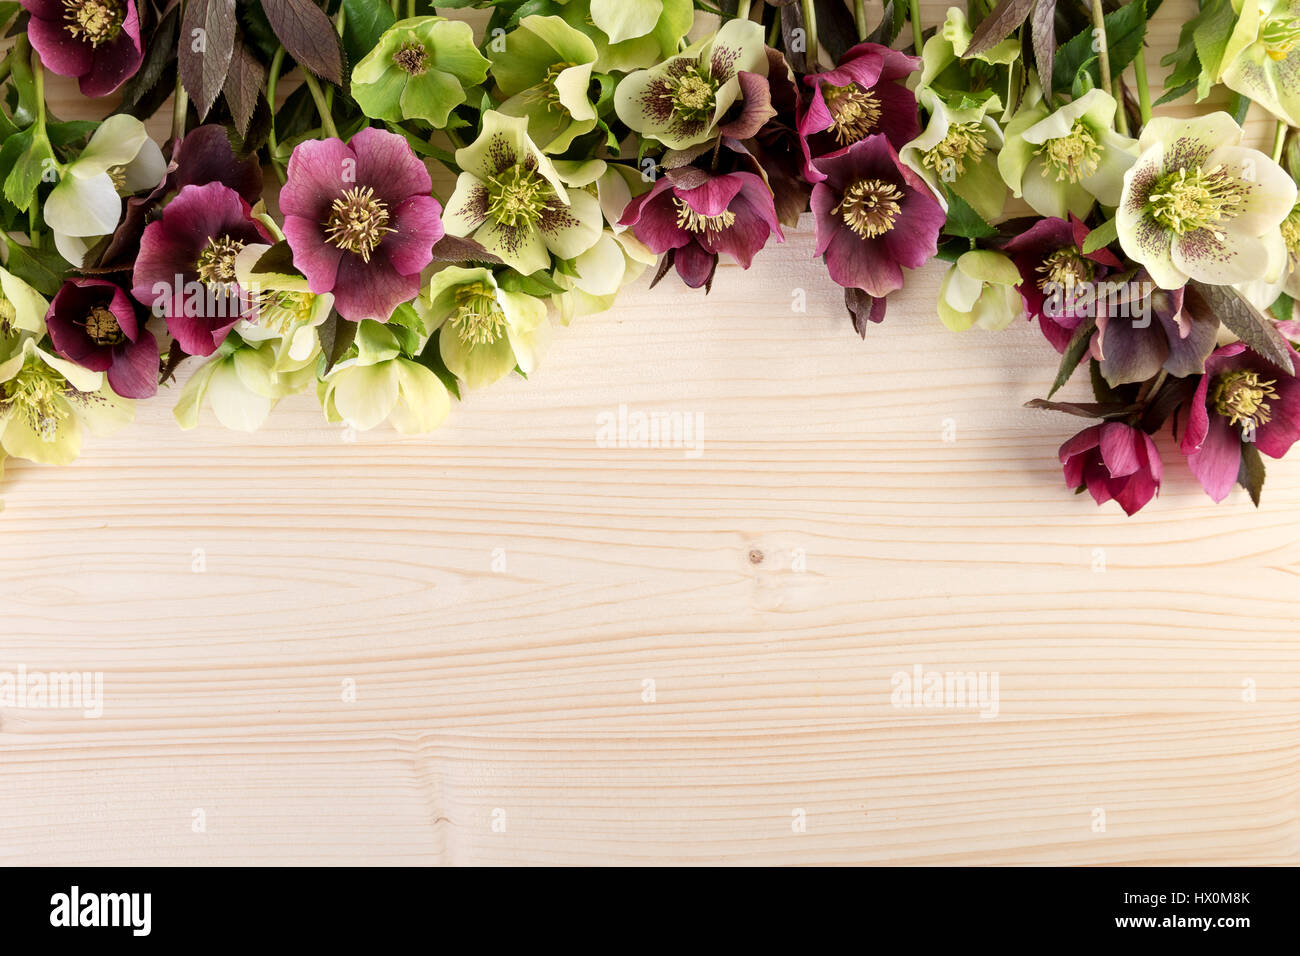 Spring Flowers Pastel Color Natural Background Lenten Roses Over